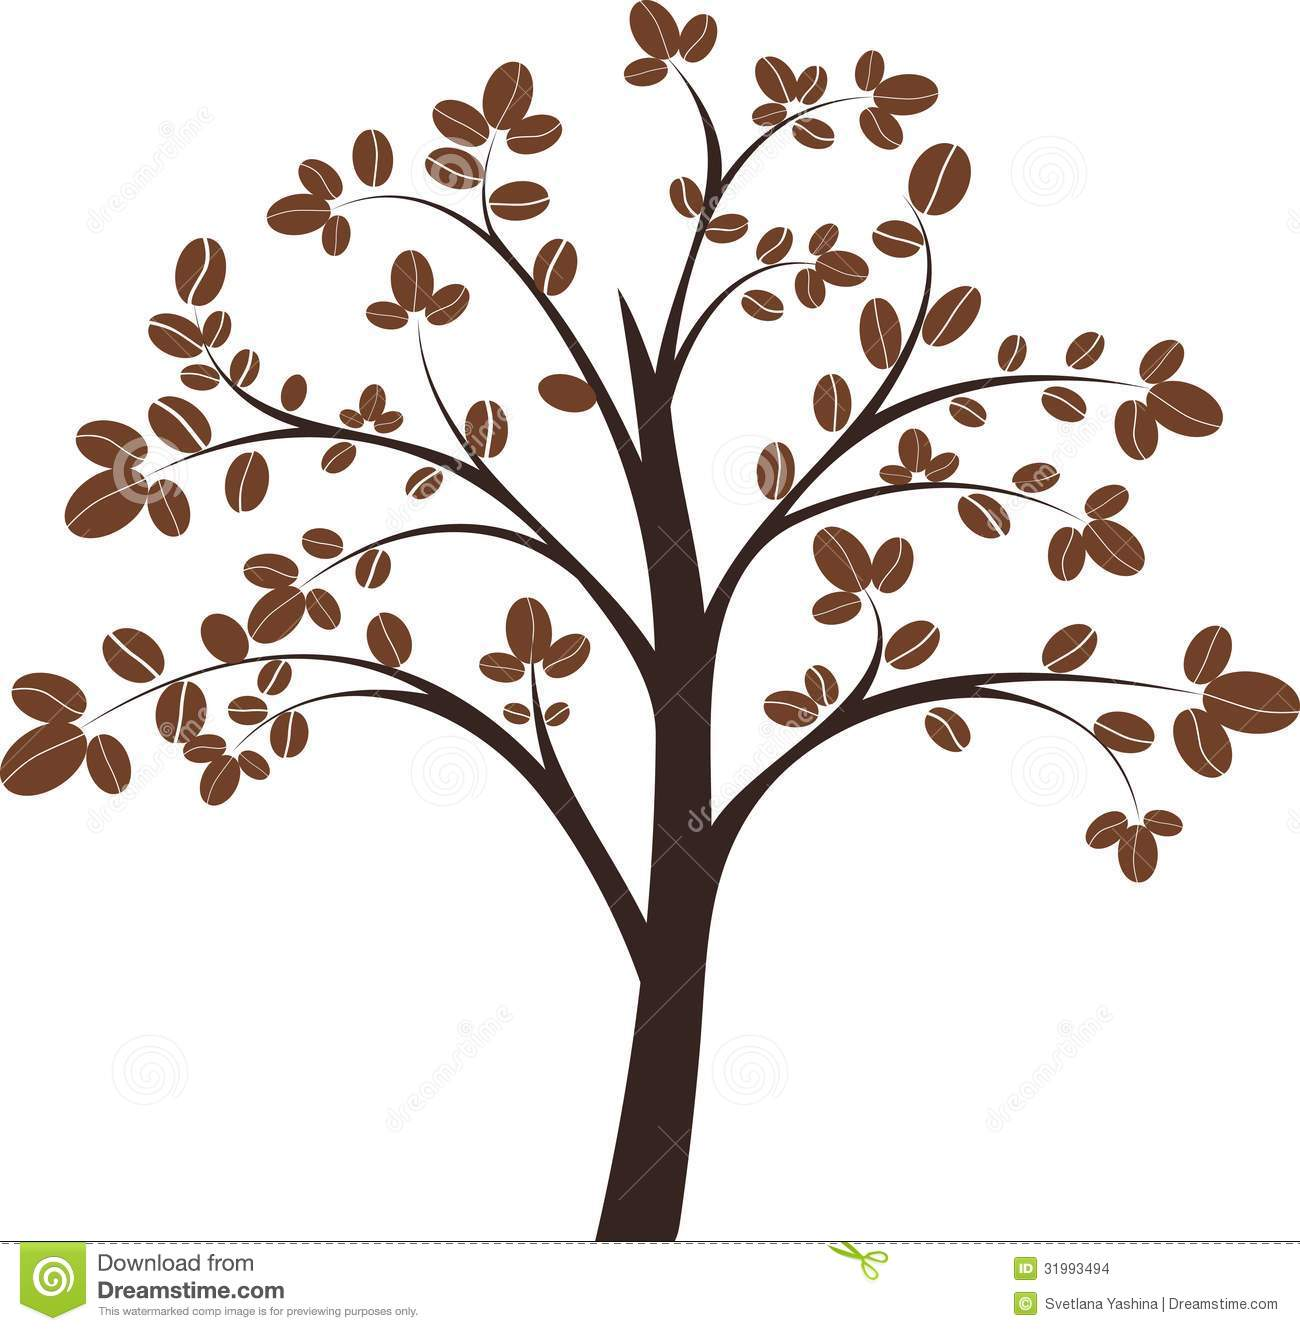 Coffee tree on white background, vector illustration.